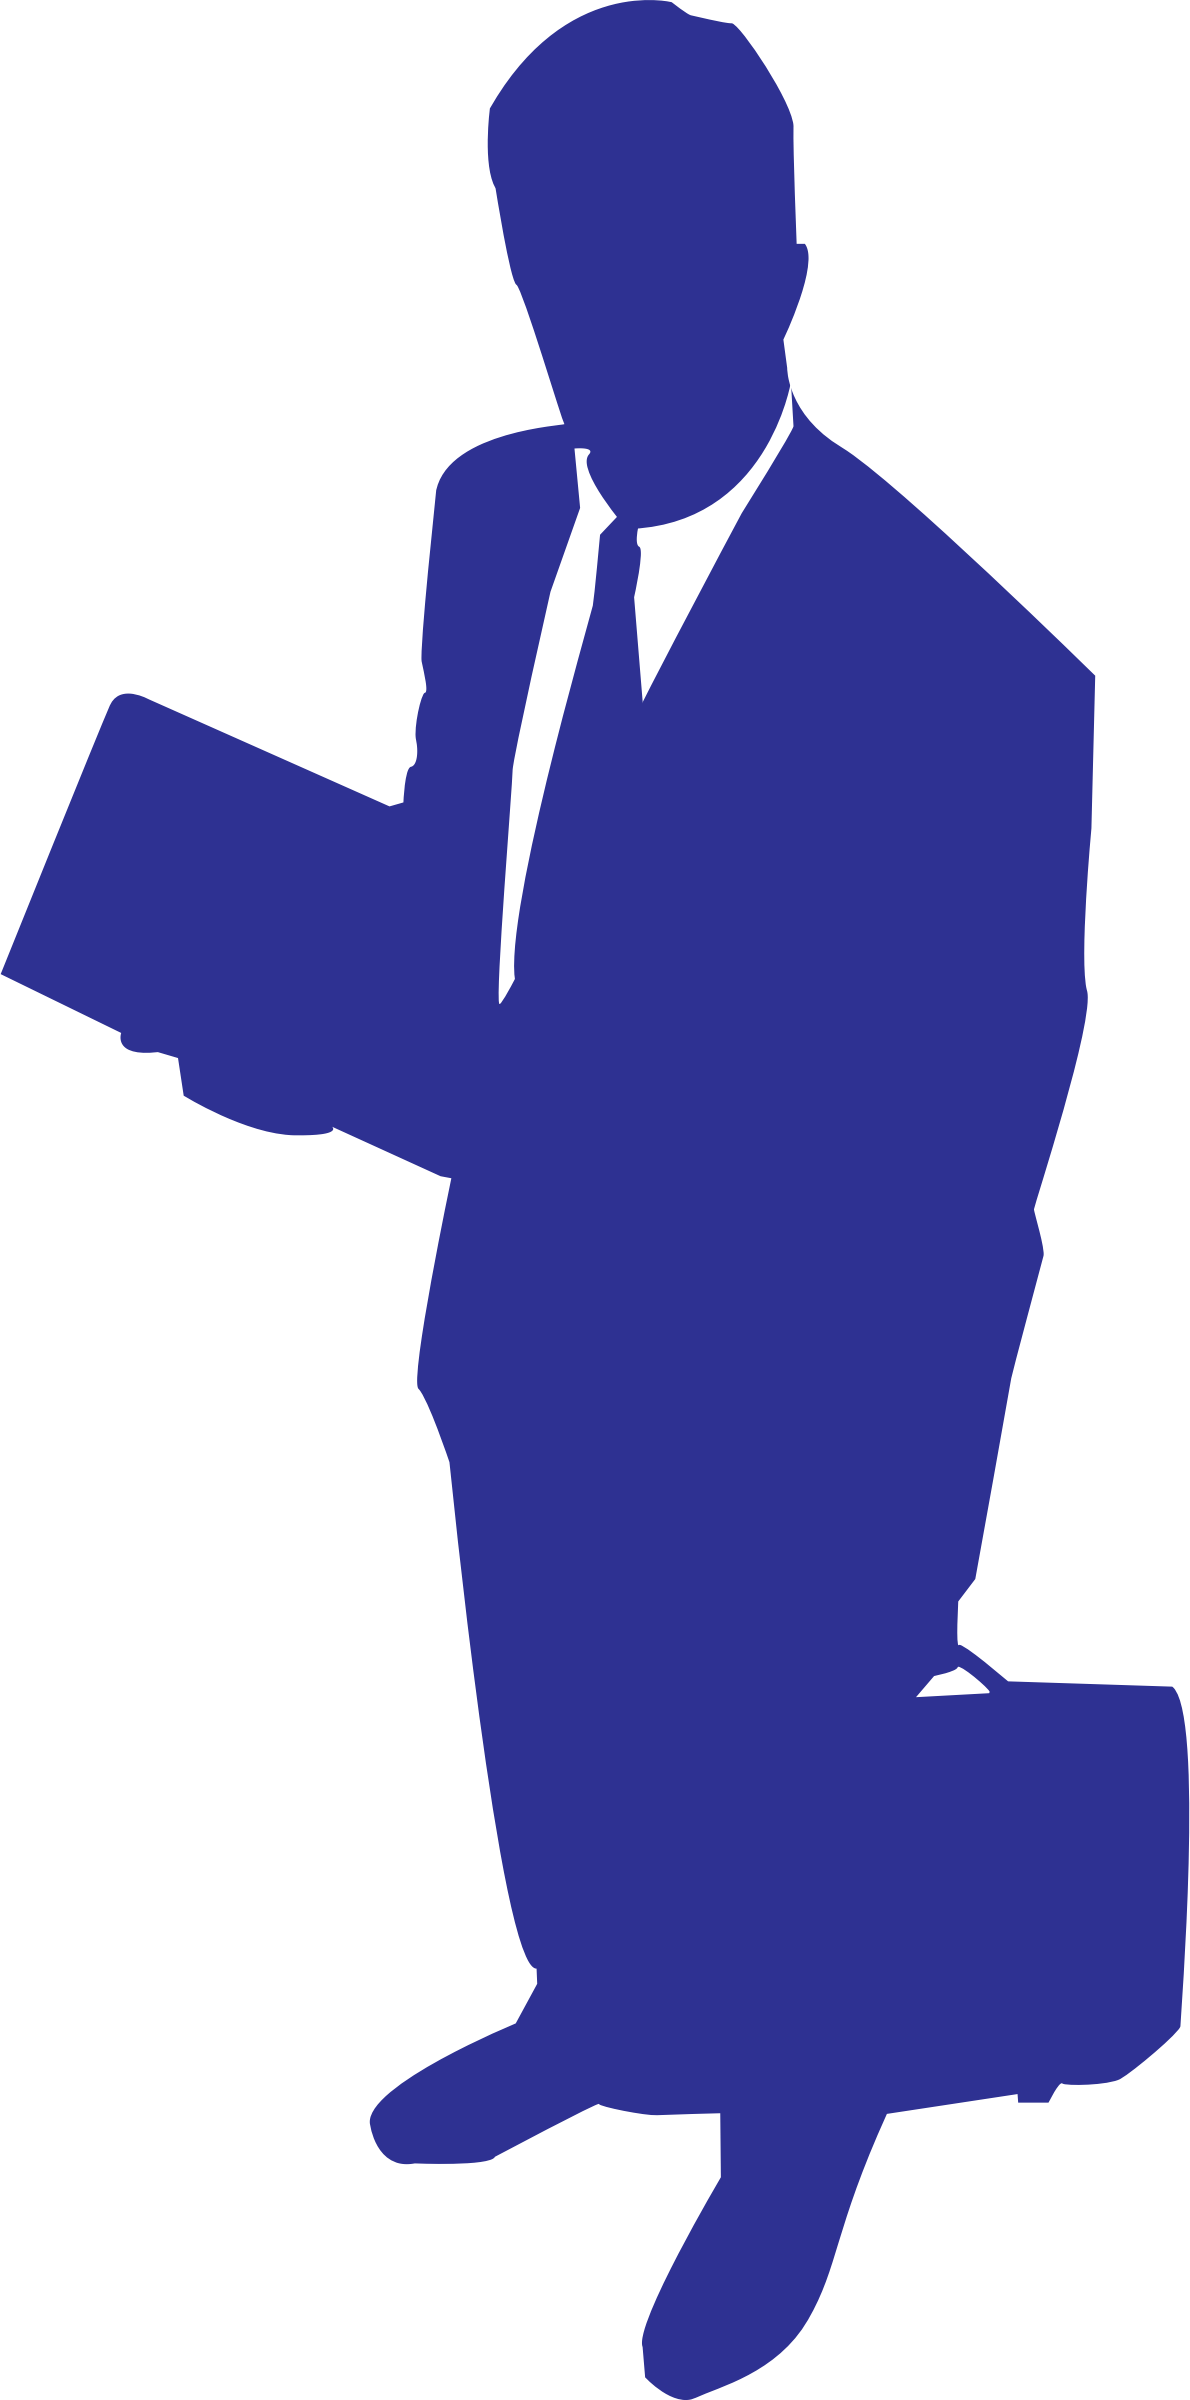 Job clipart professional job. Businessman by shokunin images